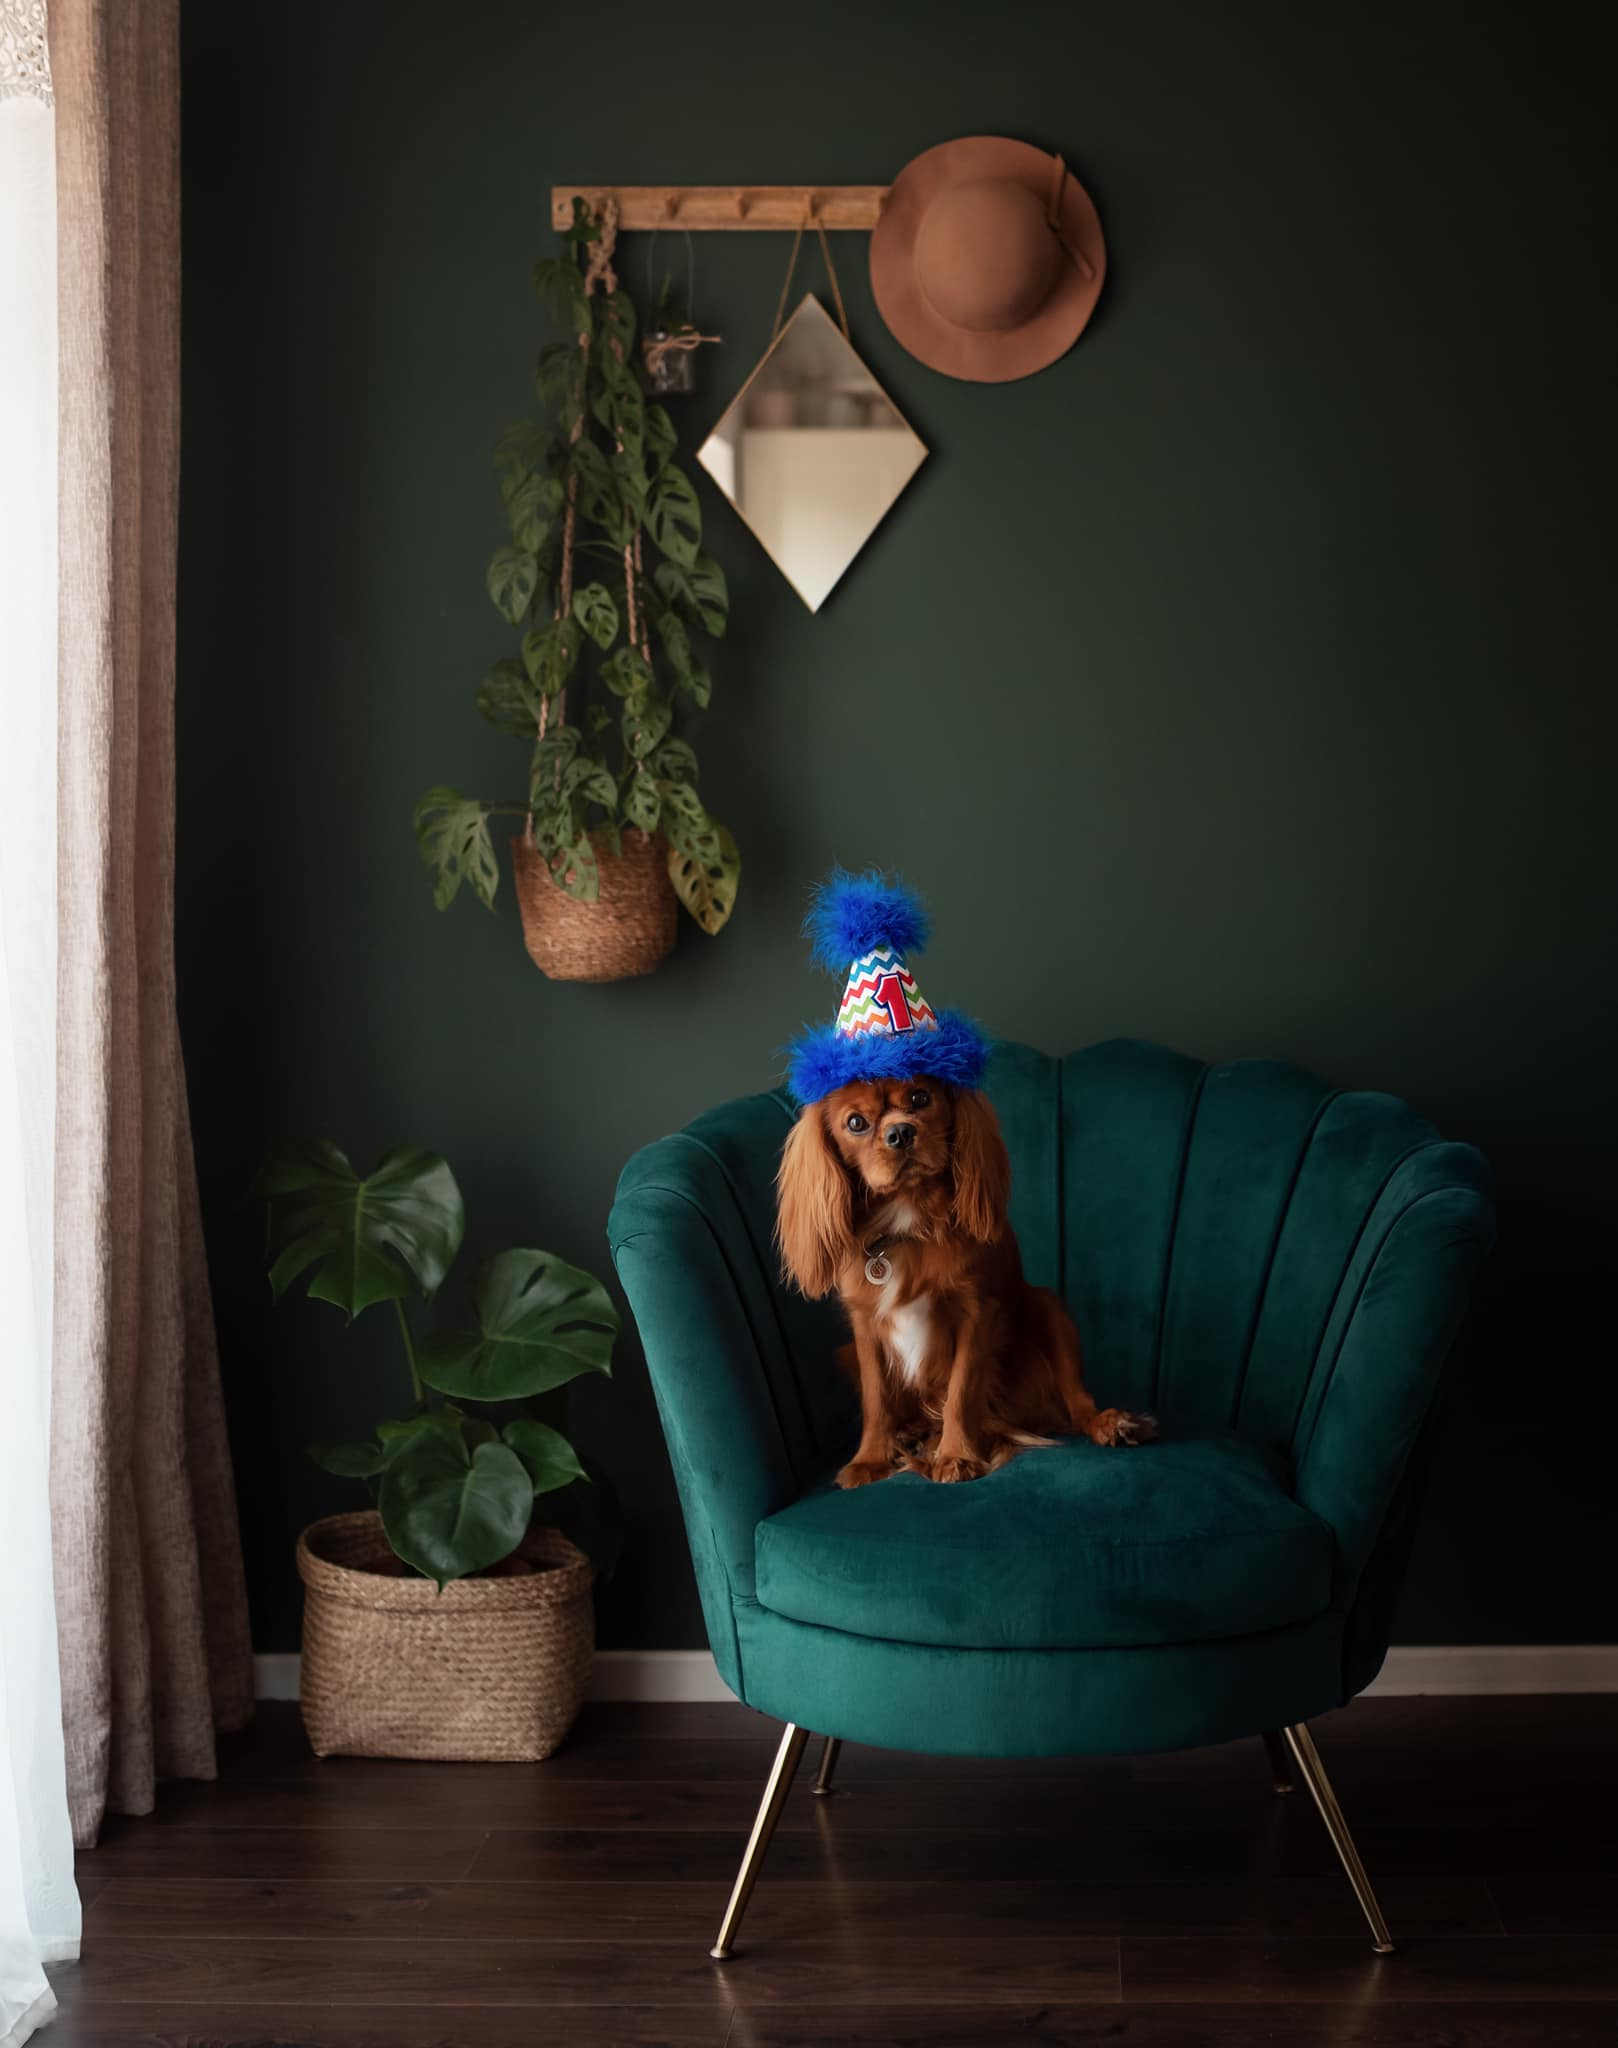 a dog with a birthday hat sits on a armchair